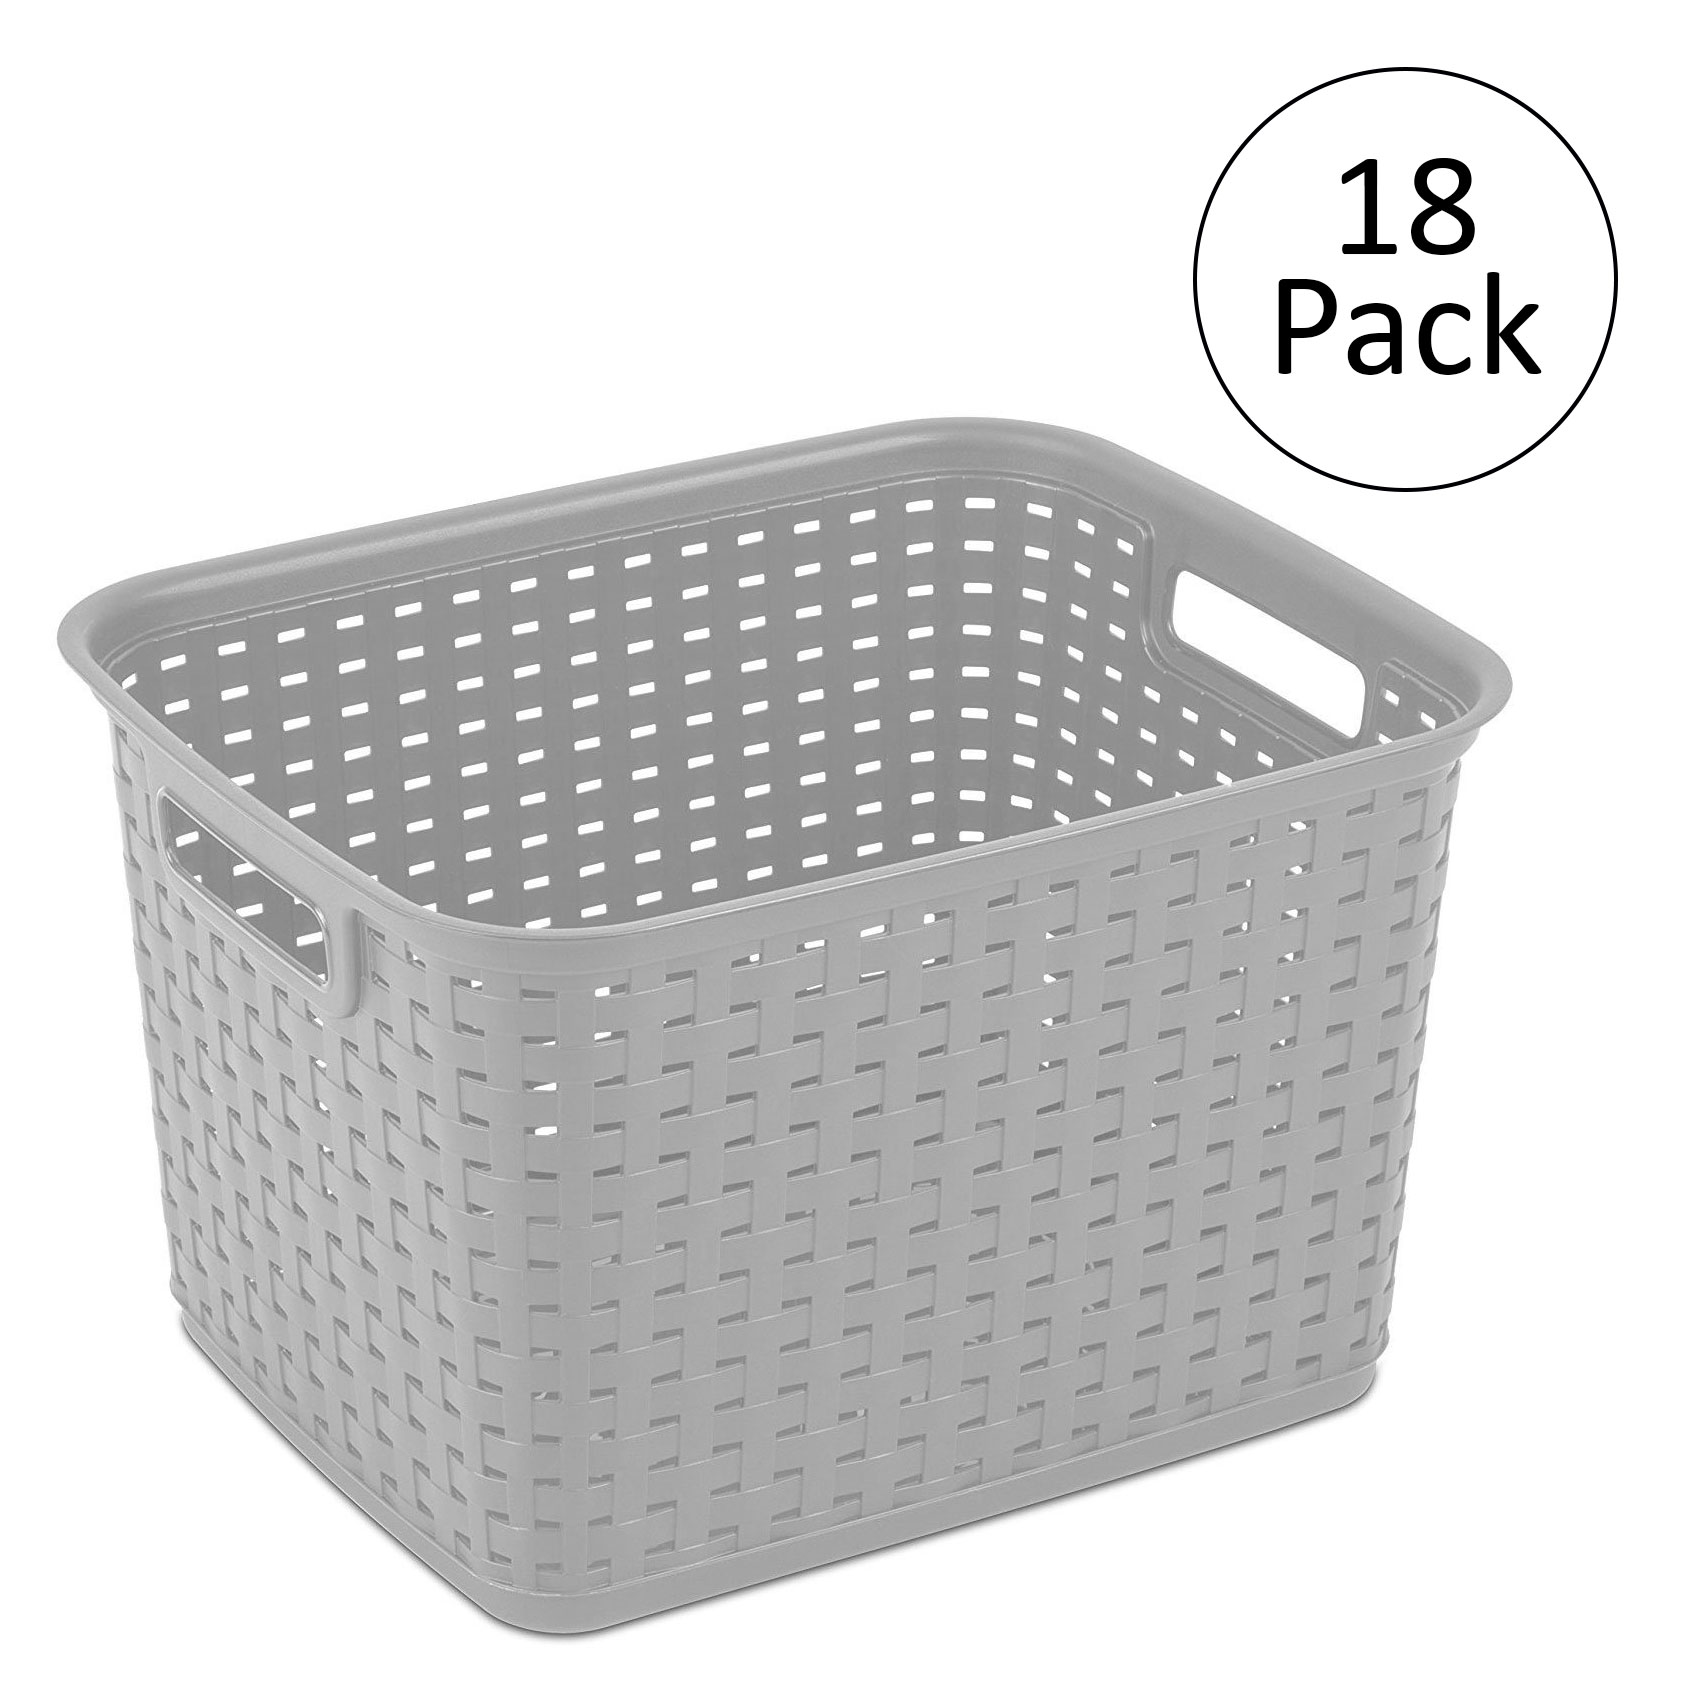 sterilite 12736 tall weave plastic laundry hamper storage basket gray 18 pack 73149096418 ebay. Black Bedroom Furniture Sets. Home Design Ideas